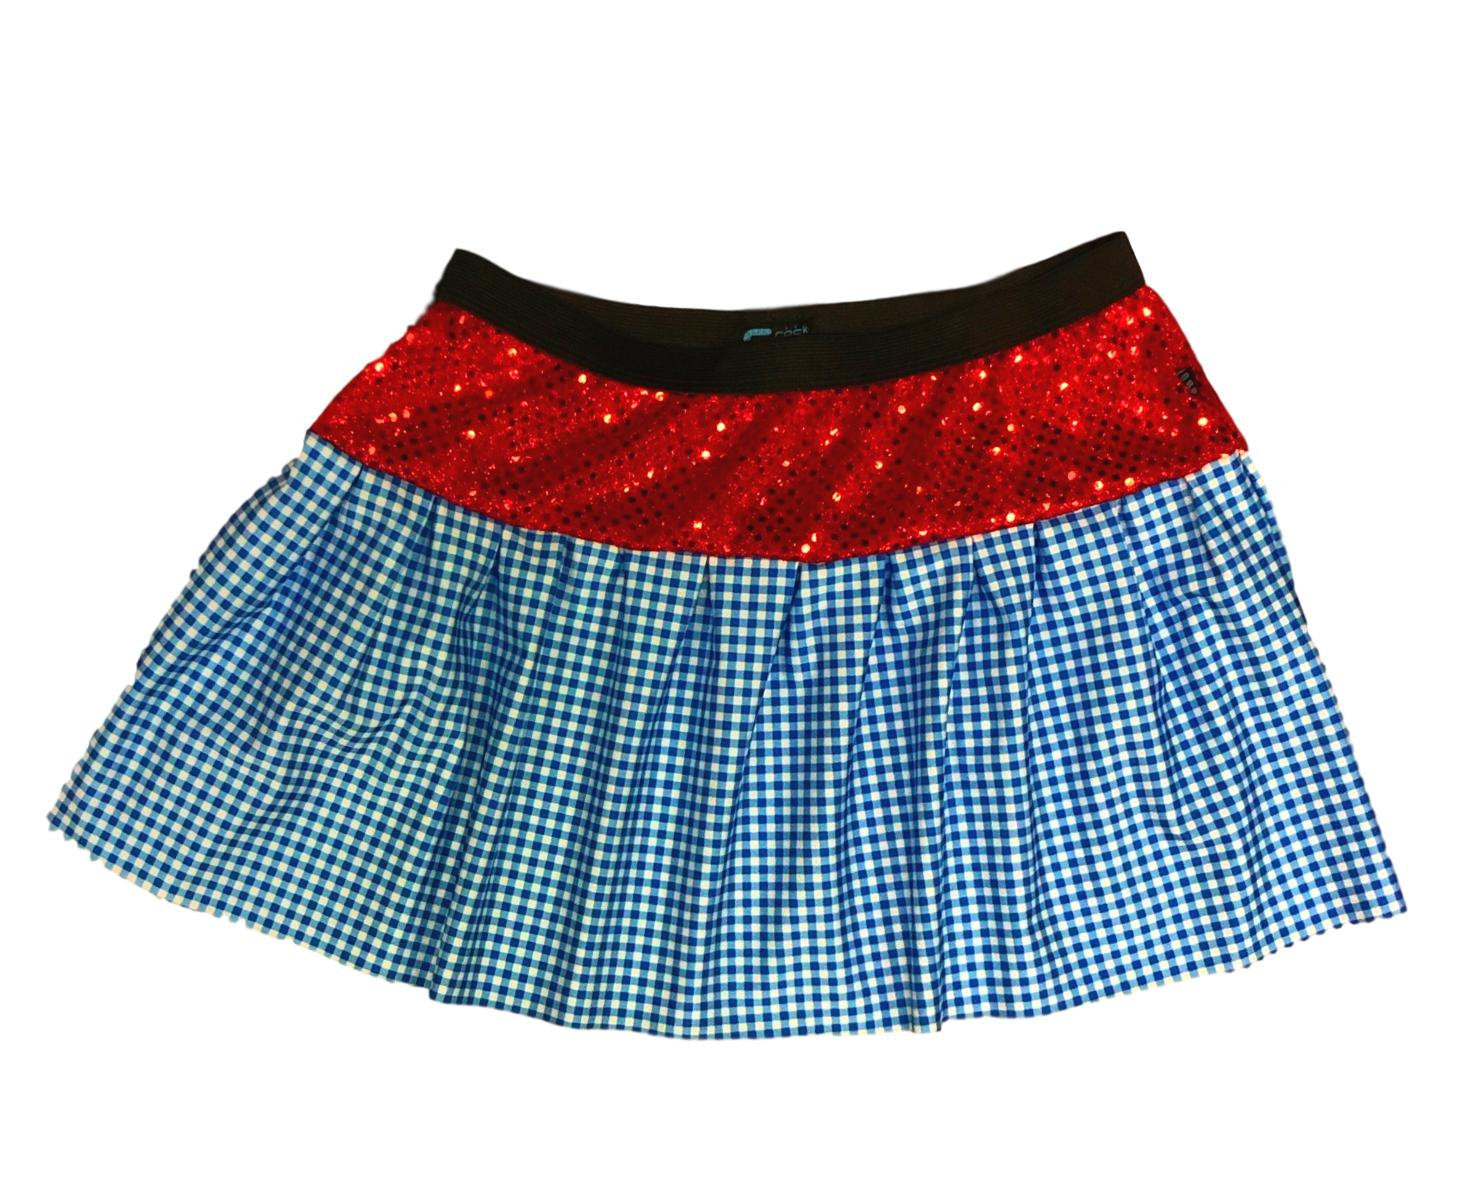 """Dorothy"" Wizard of Oz Inspired Skirt - Rock City Skirts"